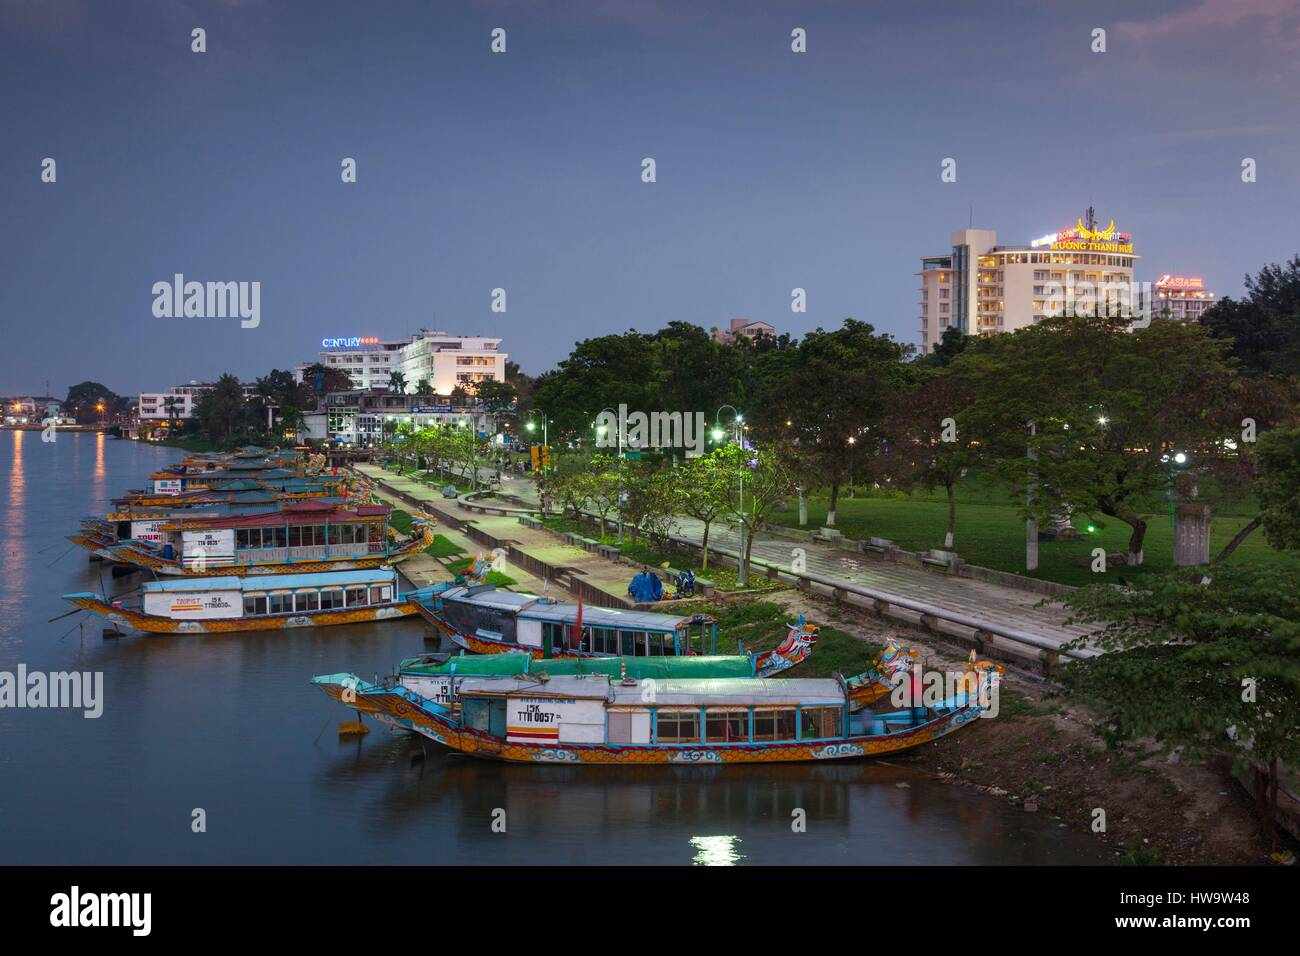 Vietnam, Hue, elevated view of Century Hotel, Perfume river and dragon boats, dusk Stock Photo